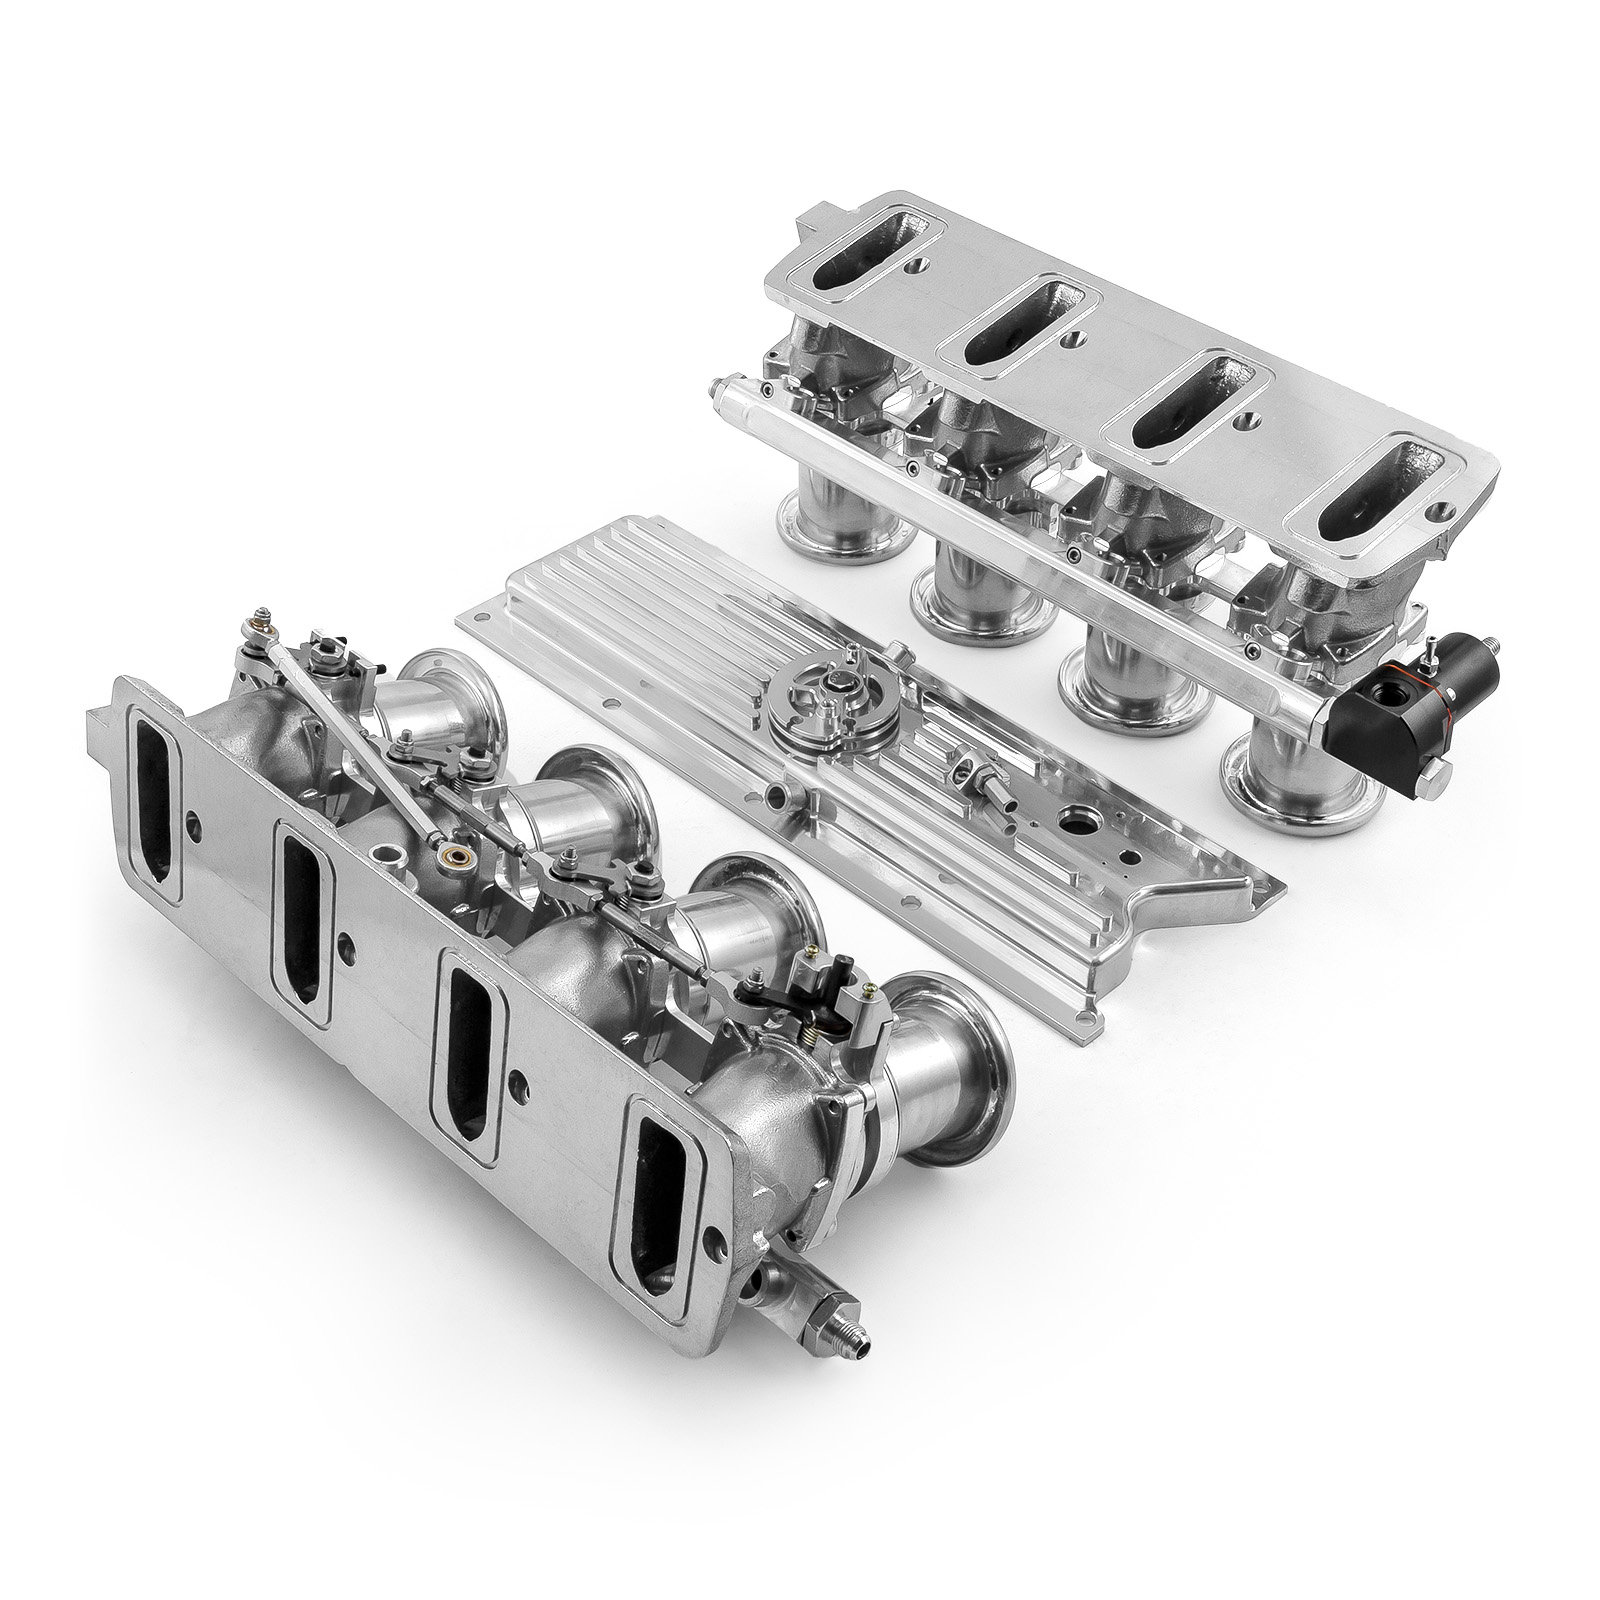 Fuel Injected Speedmaster 1-148-002 compatible with Chevy GM LS3 Downdraft EFI Stack Intake Manifold System Complete Polished Intake Manifolds